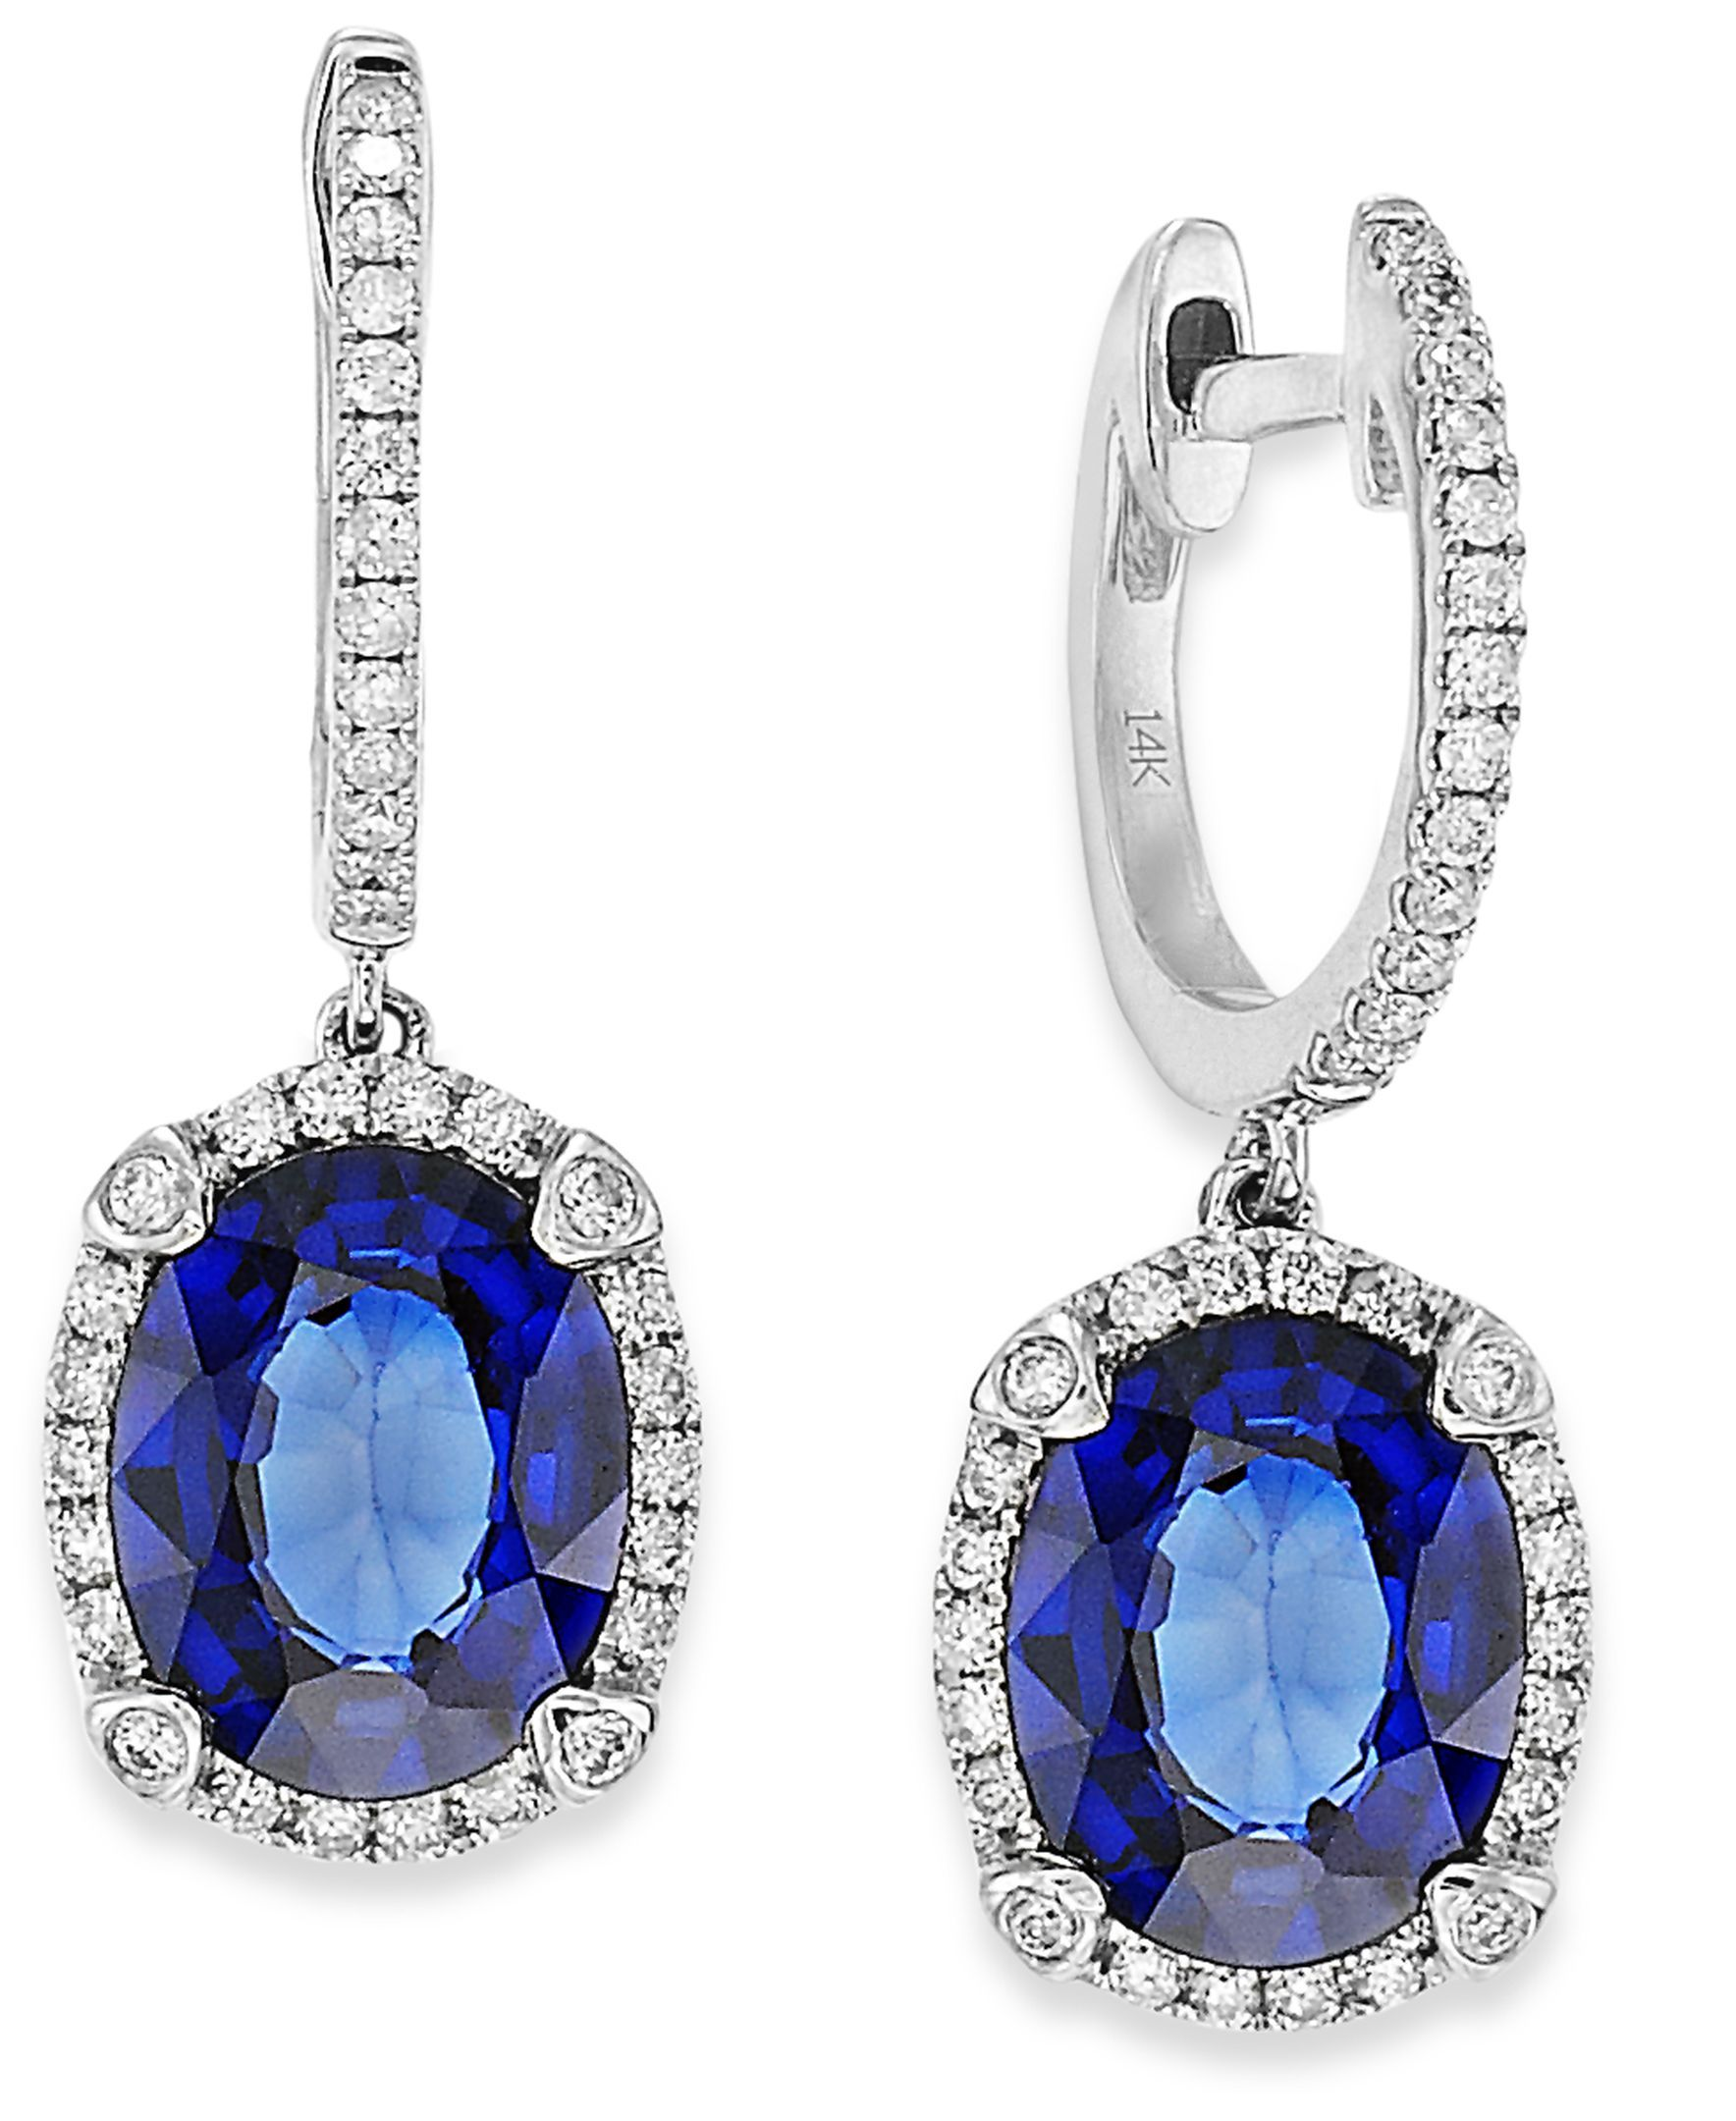 Velvet Bleu by Effy Manufactured Diffused Sapphire (3-3/4 ct. t.w.) and Diamond (1/3 ct. t.w.) Oval Earrings in 14k White Gold